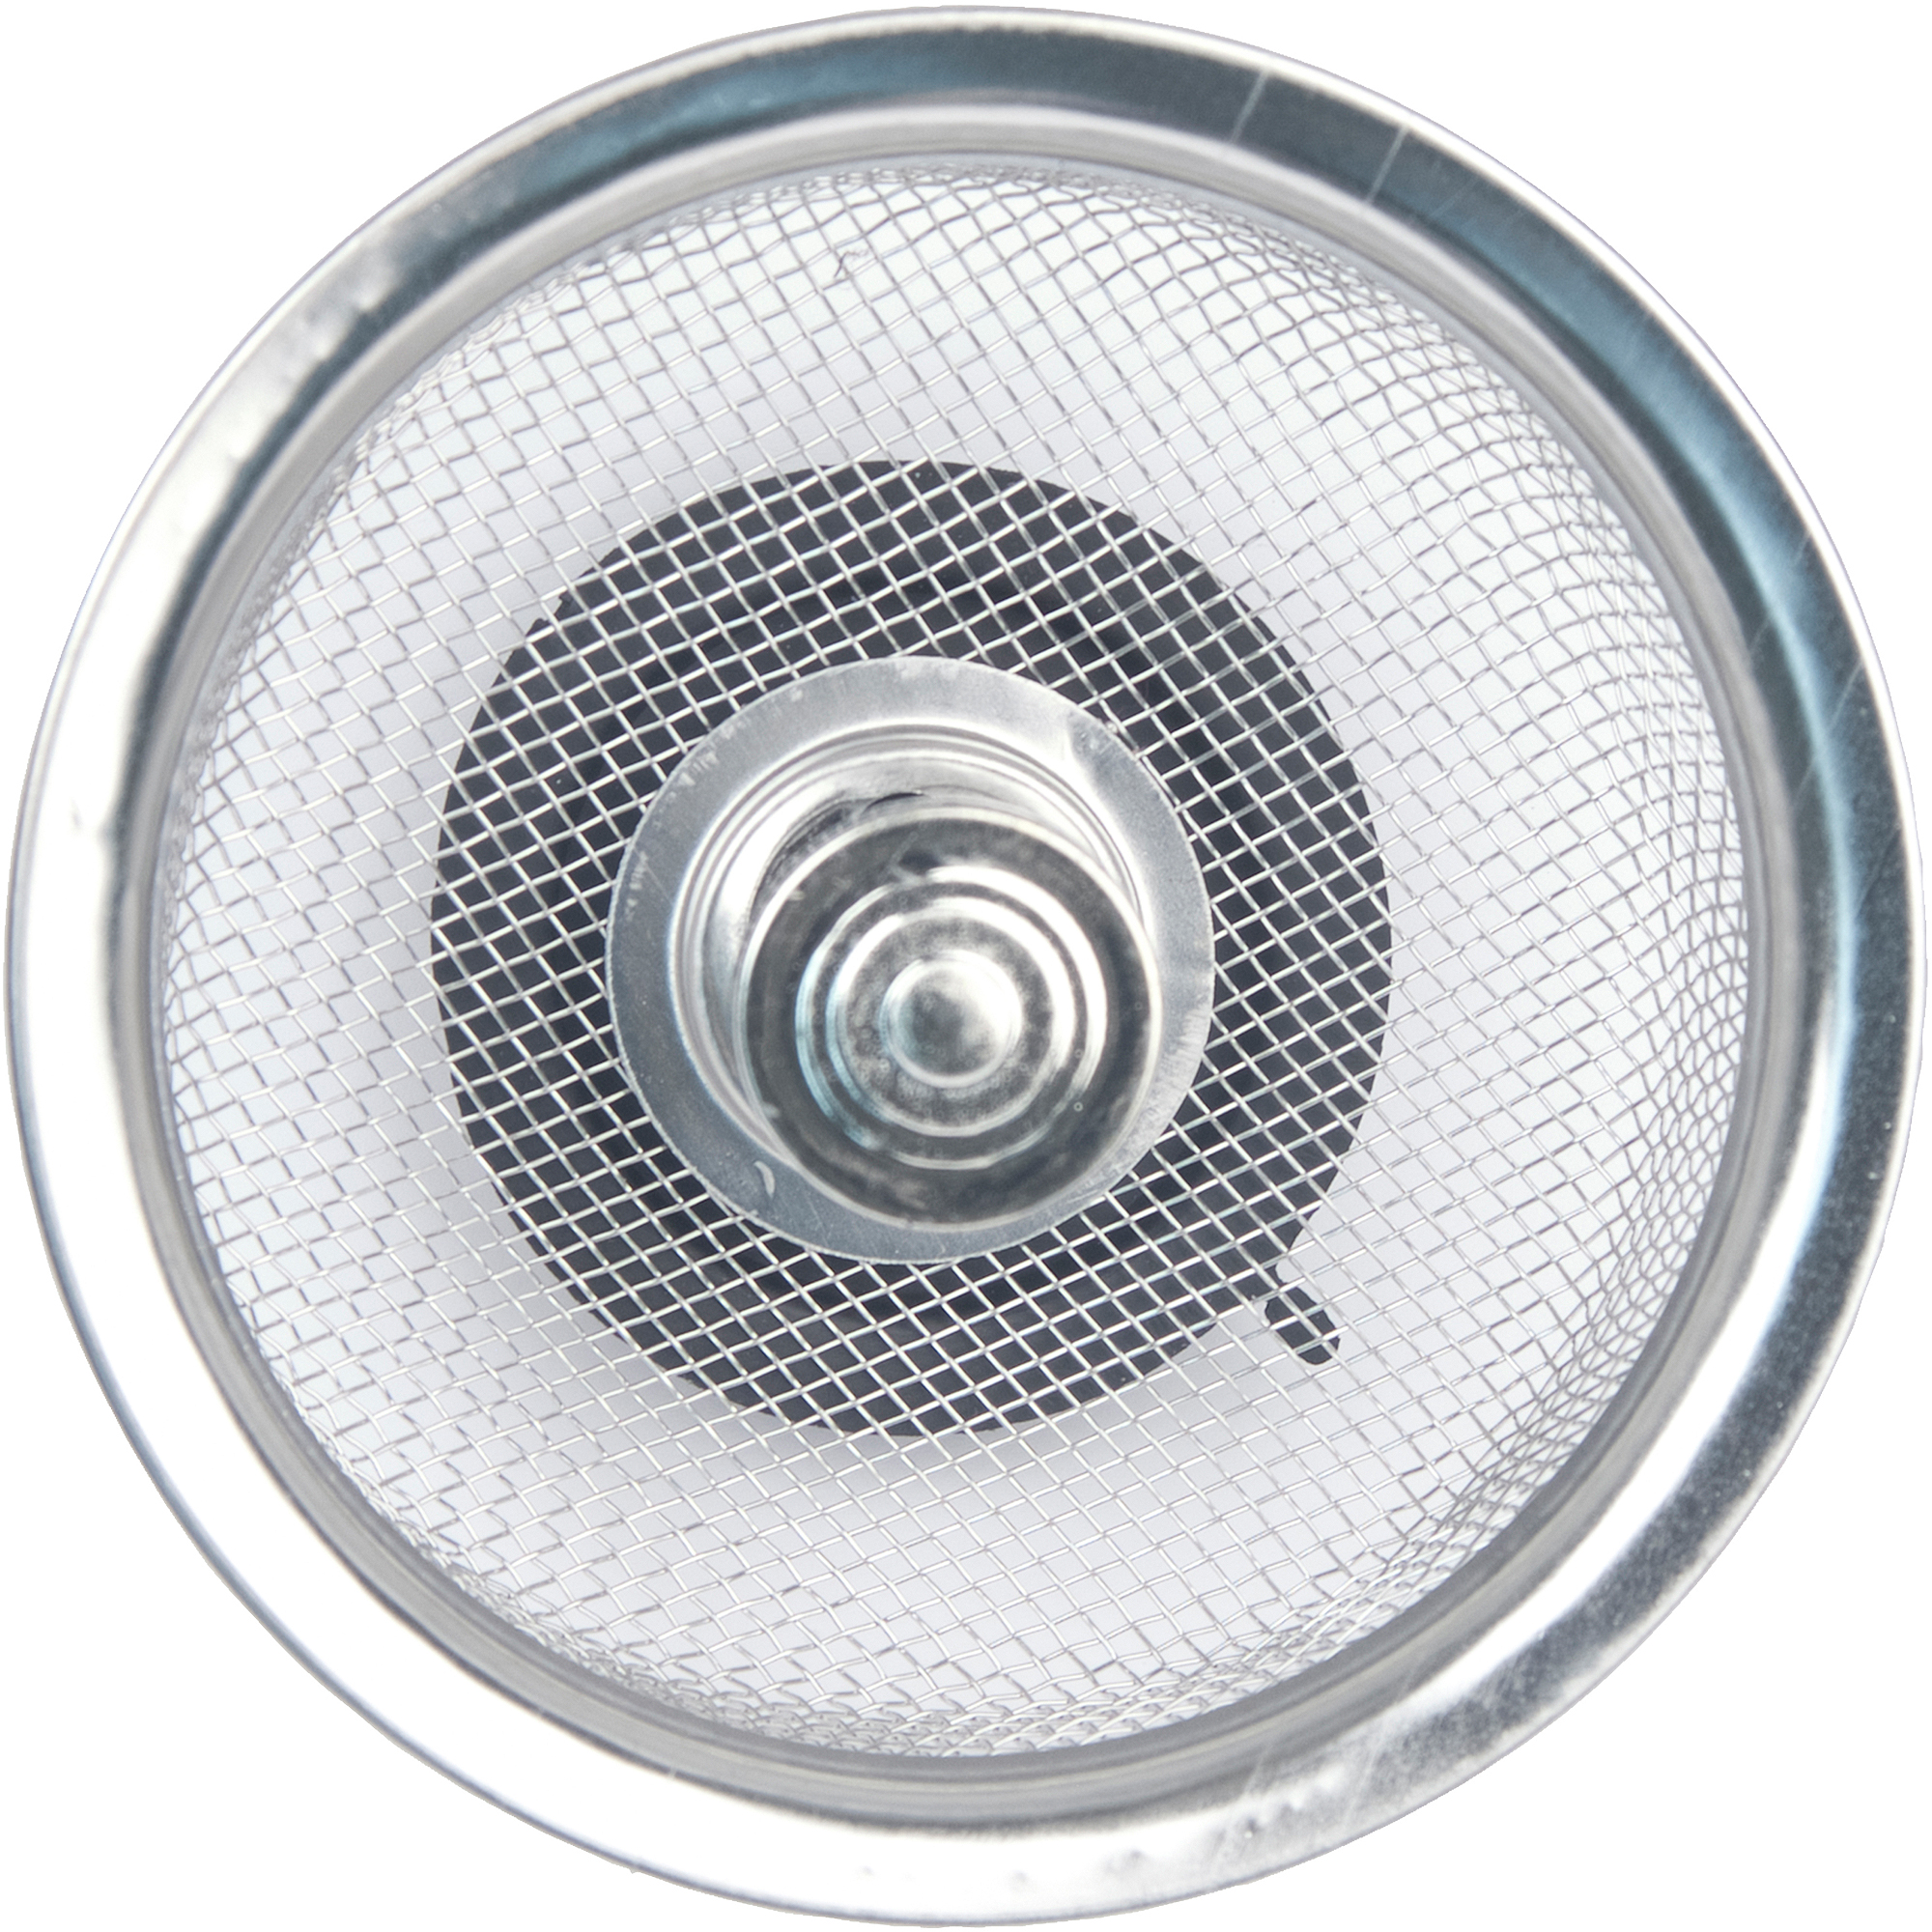 Peerless Satin Nickel Mesh Sink Strainer with Stopper